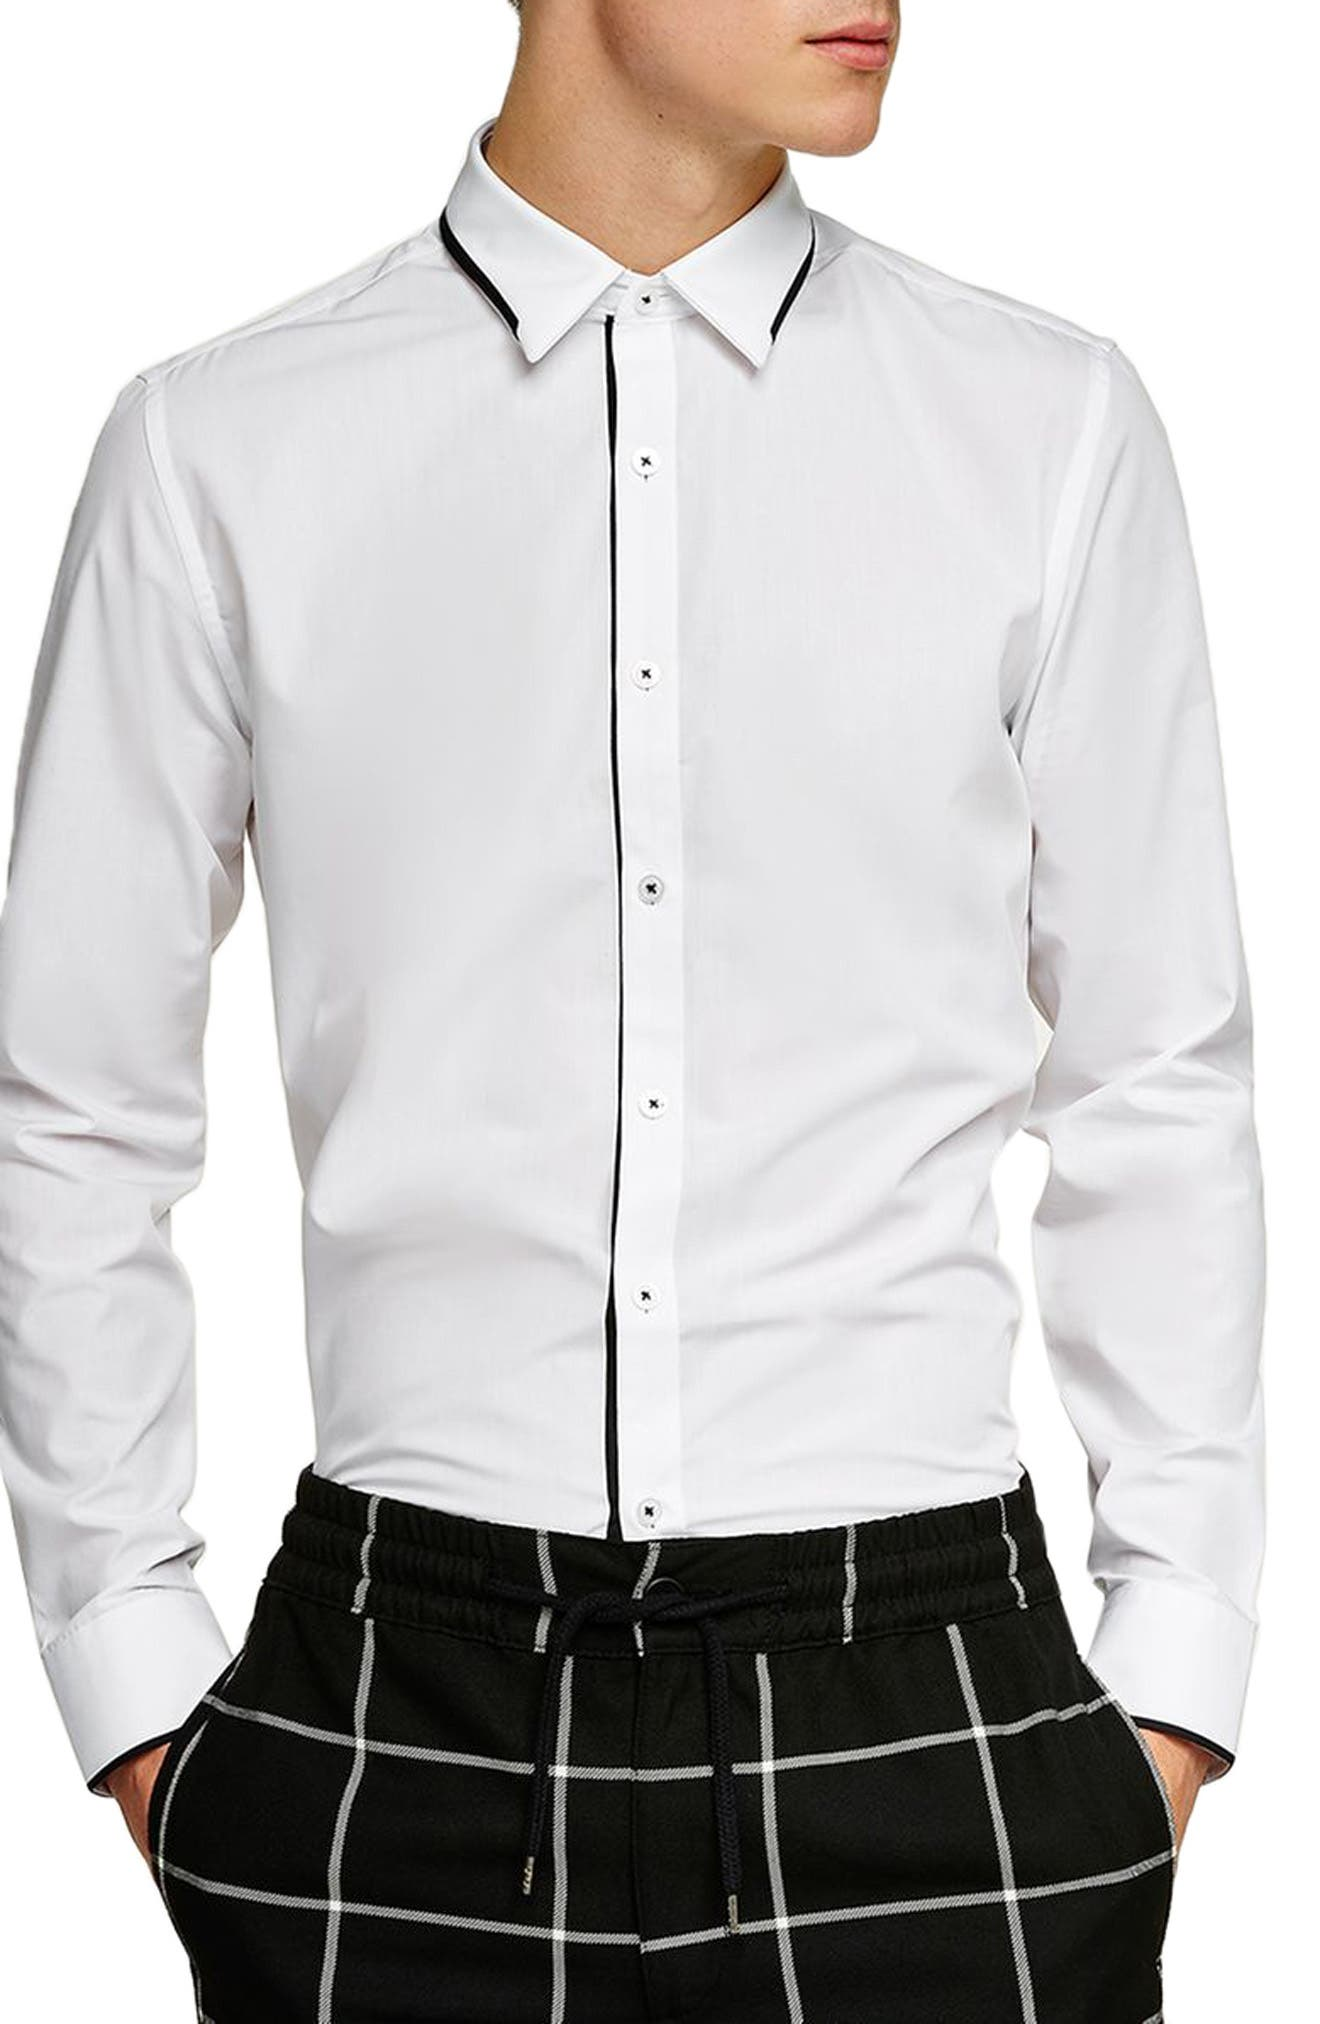 Smart Skinny Fit Dress Shirt,                             Main thumbnail 1, color,                             WHITE